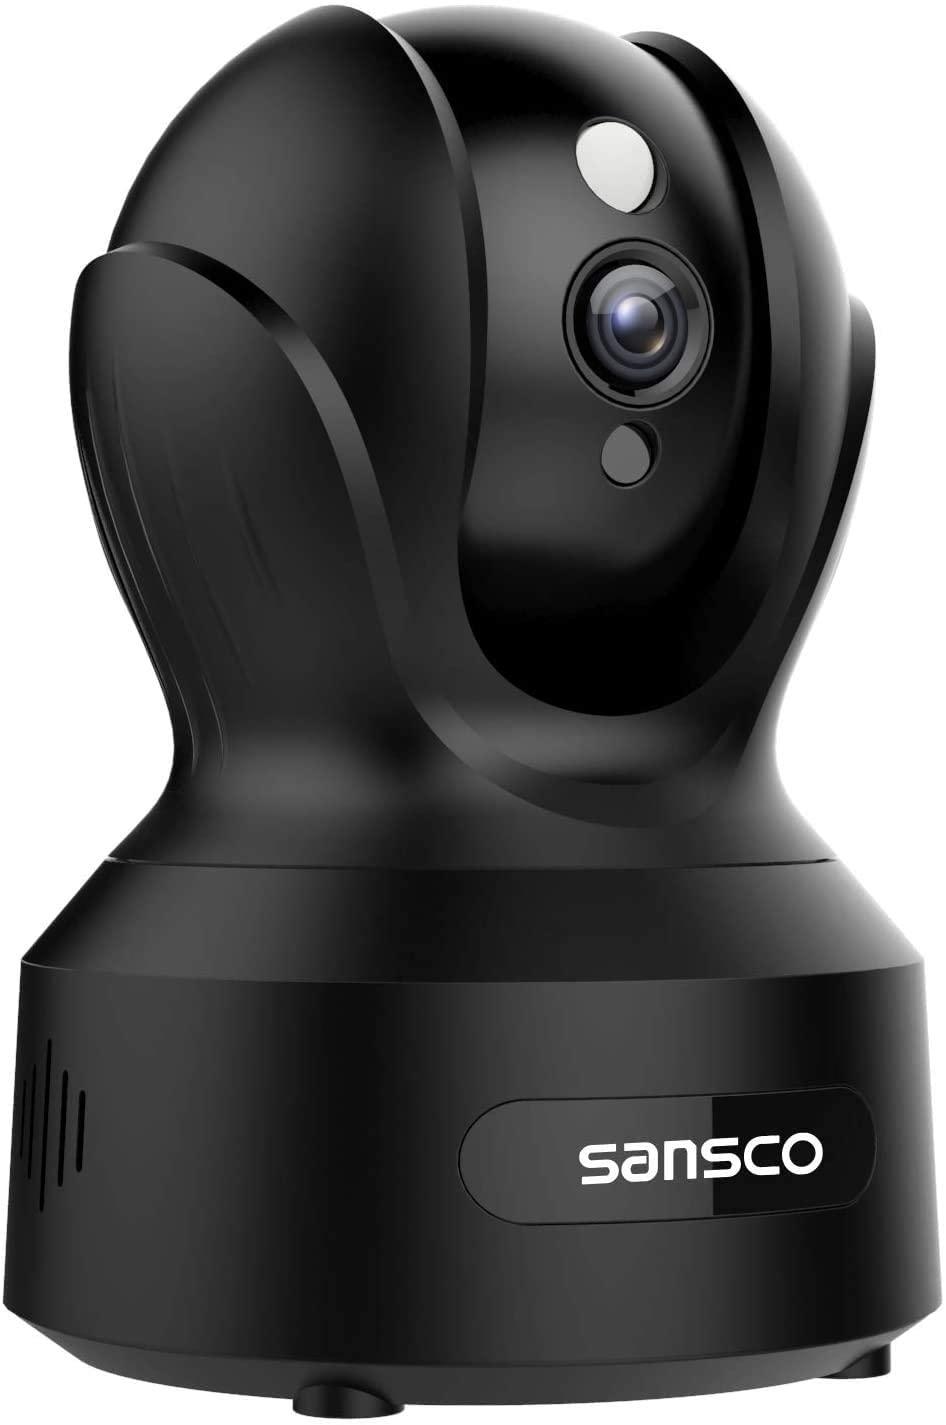 SANSCO Indoor Wireless WiFi Security Camera Full HD 2MP 1080p Home Monitor Surveillance Network IP Camera for Pet/Baby with IR Night Vision, Motion Detection Push Alerts and Two-Way Audio - Black